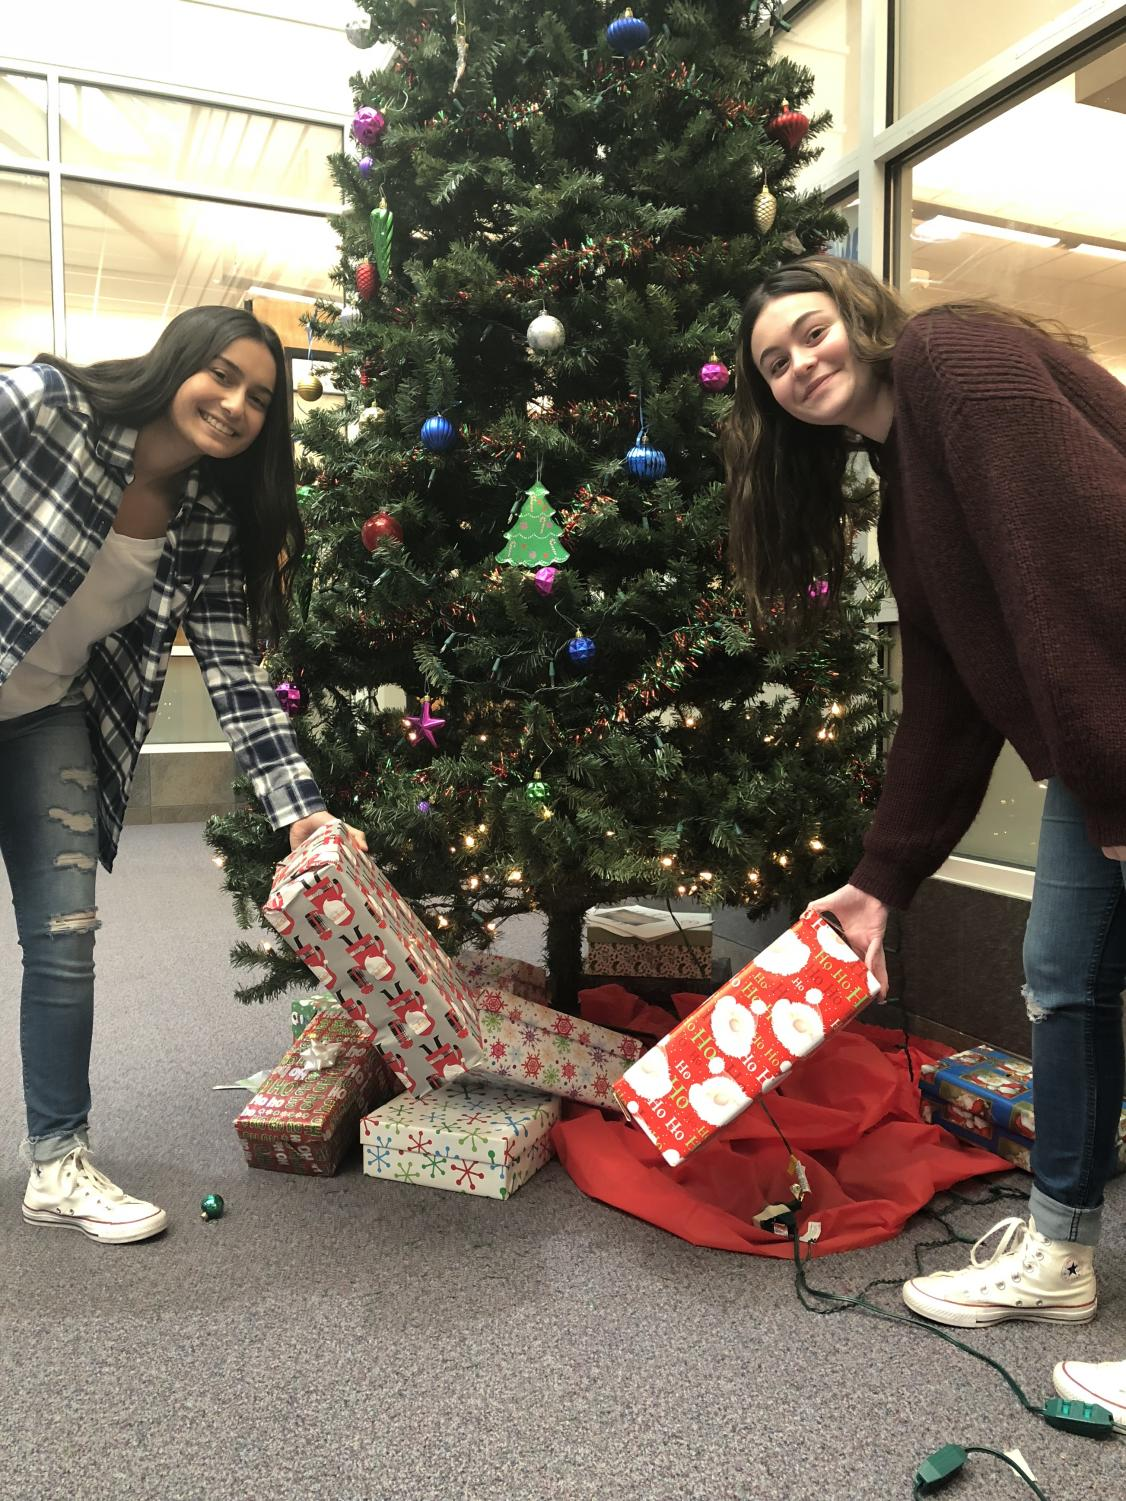 Junior Alyssa Battani and junior Sophia Asta place their wrapped gifts under the Christmas tree.